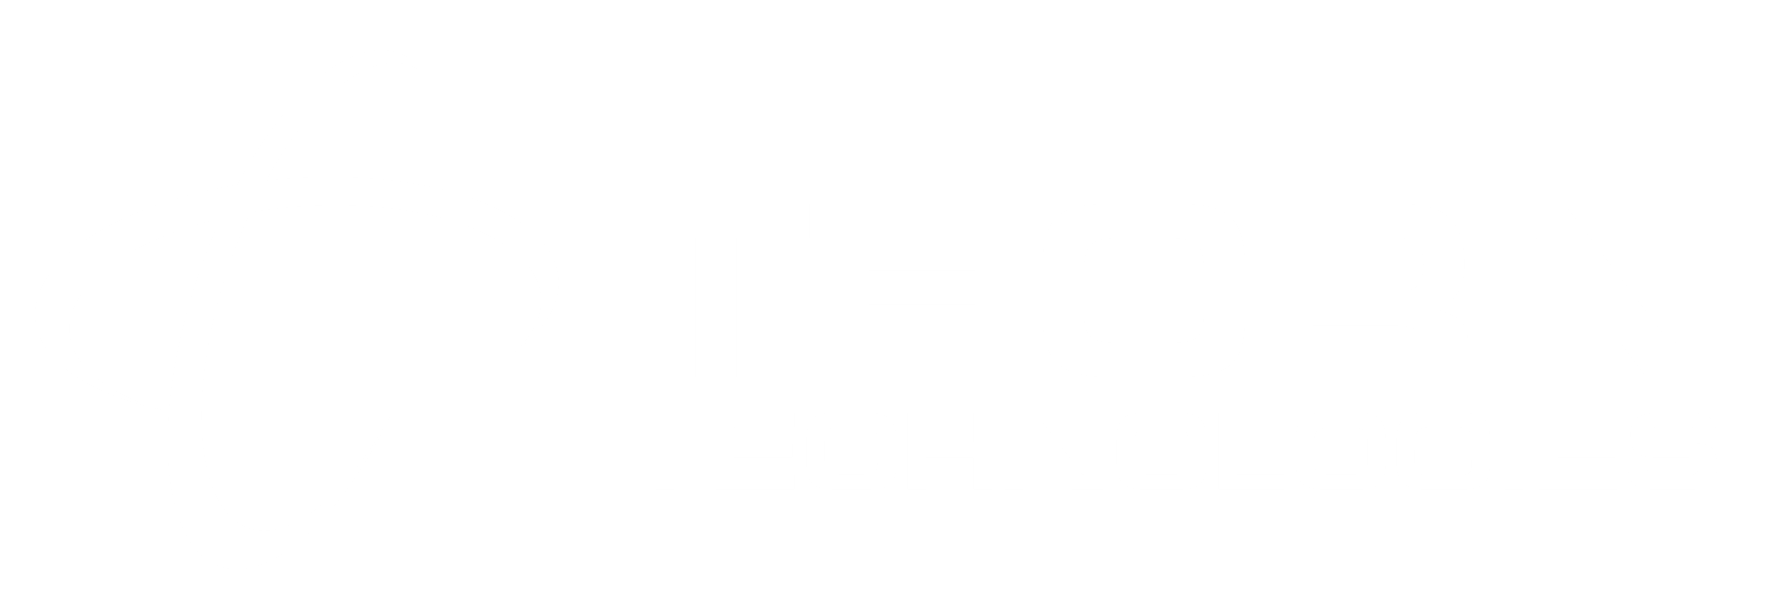 thorn-technologies-logo-white